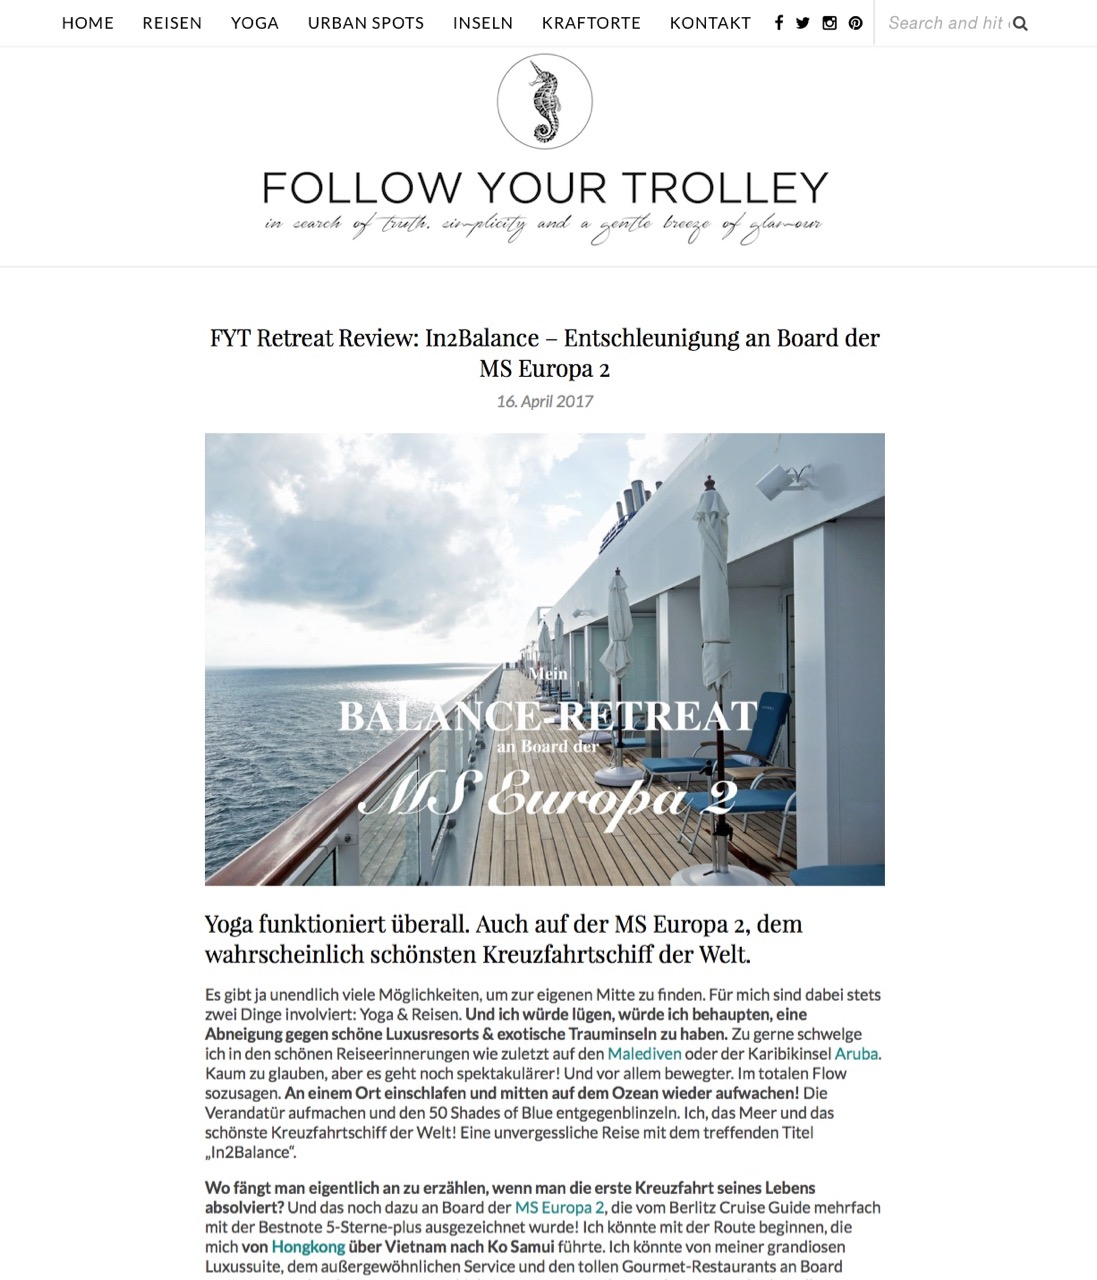 FollowYourTrolley